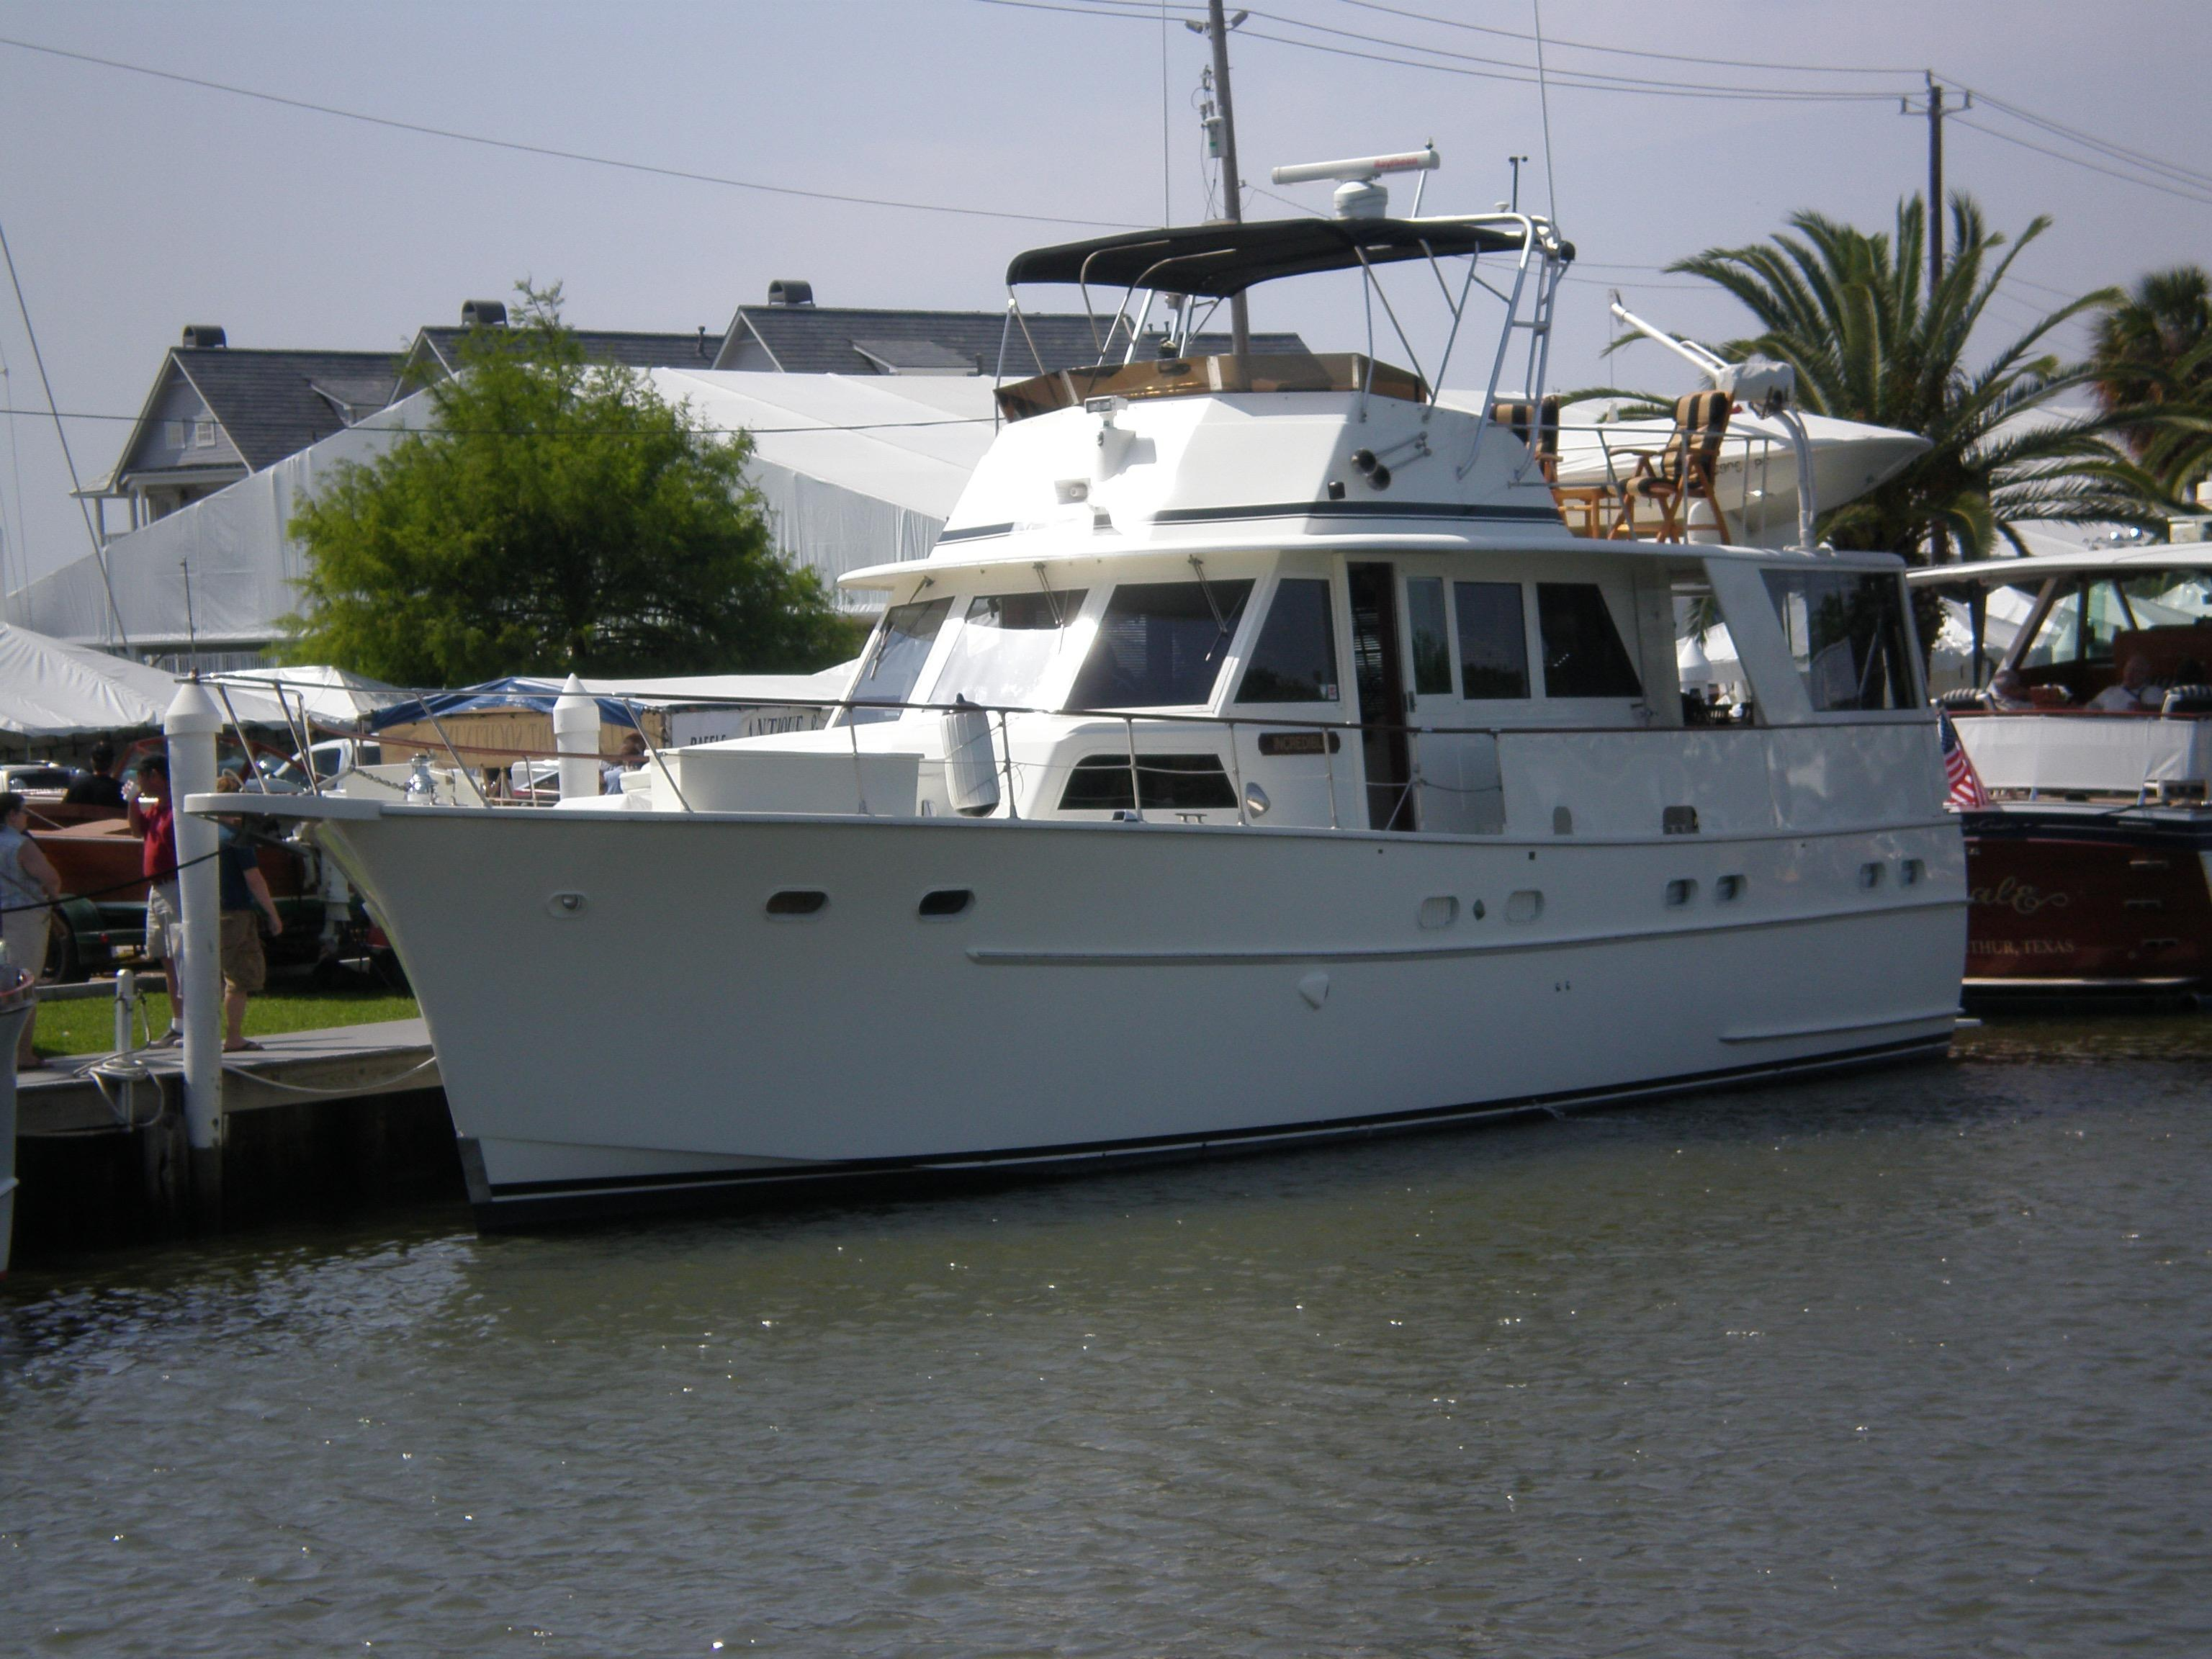 Used hatteras yachts for sale from 40 to 50 feet for Used motor yacht for sale